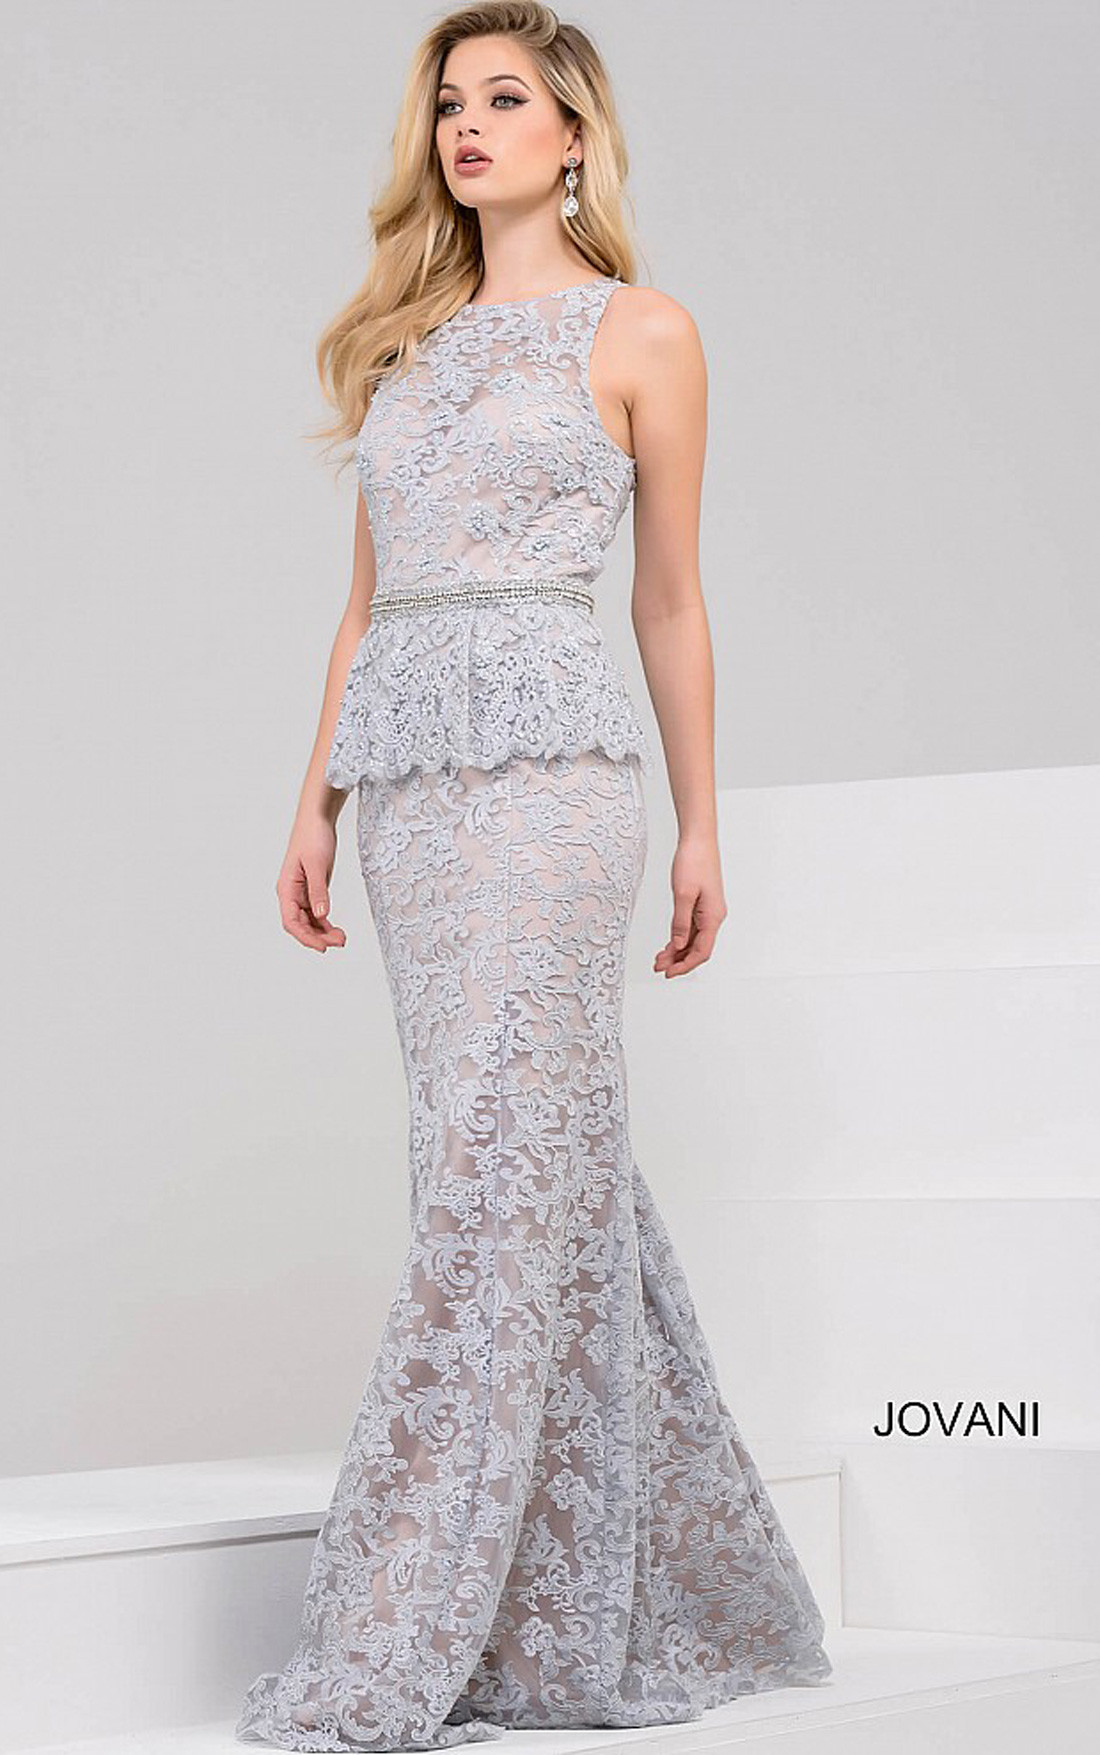 Jovani - Blue Sleeveless Peplum Mermaid Dress (41963)